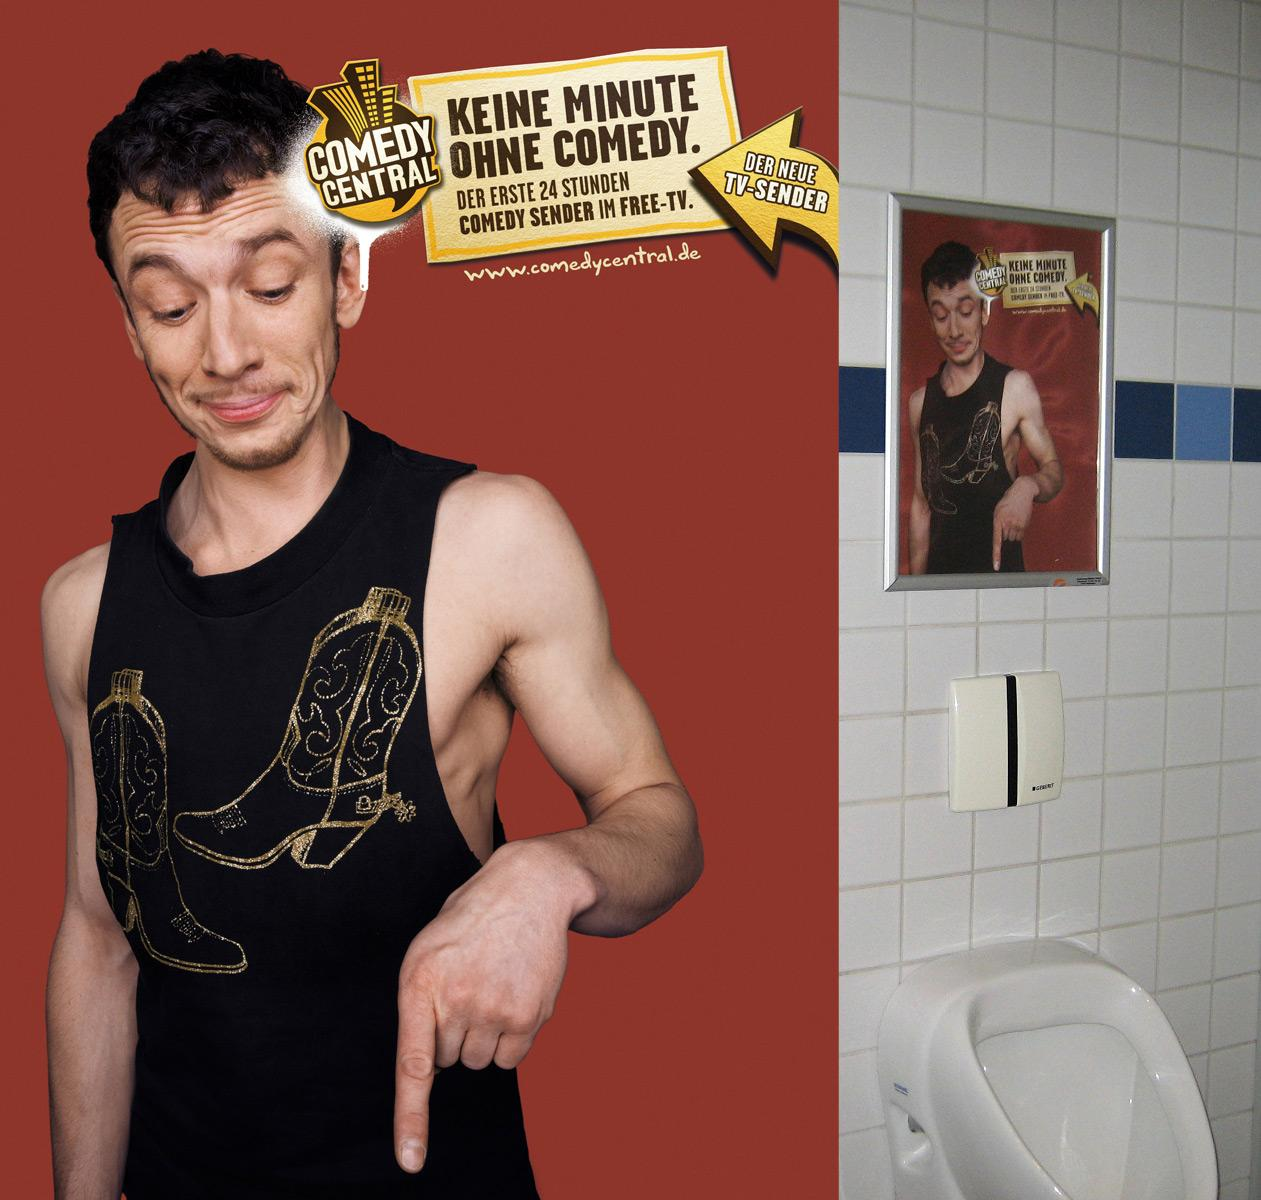 Comedy Central Print Ad -  Toilet, 4